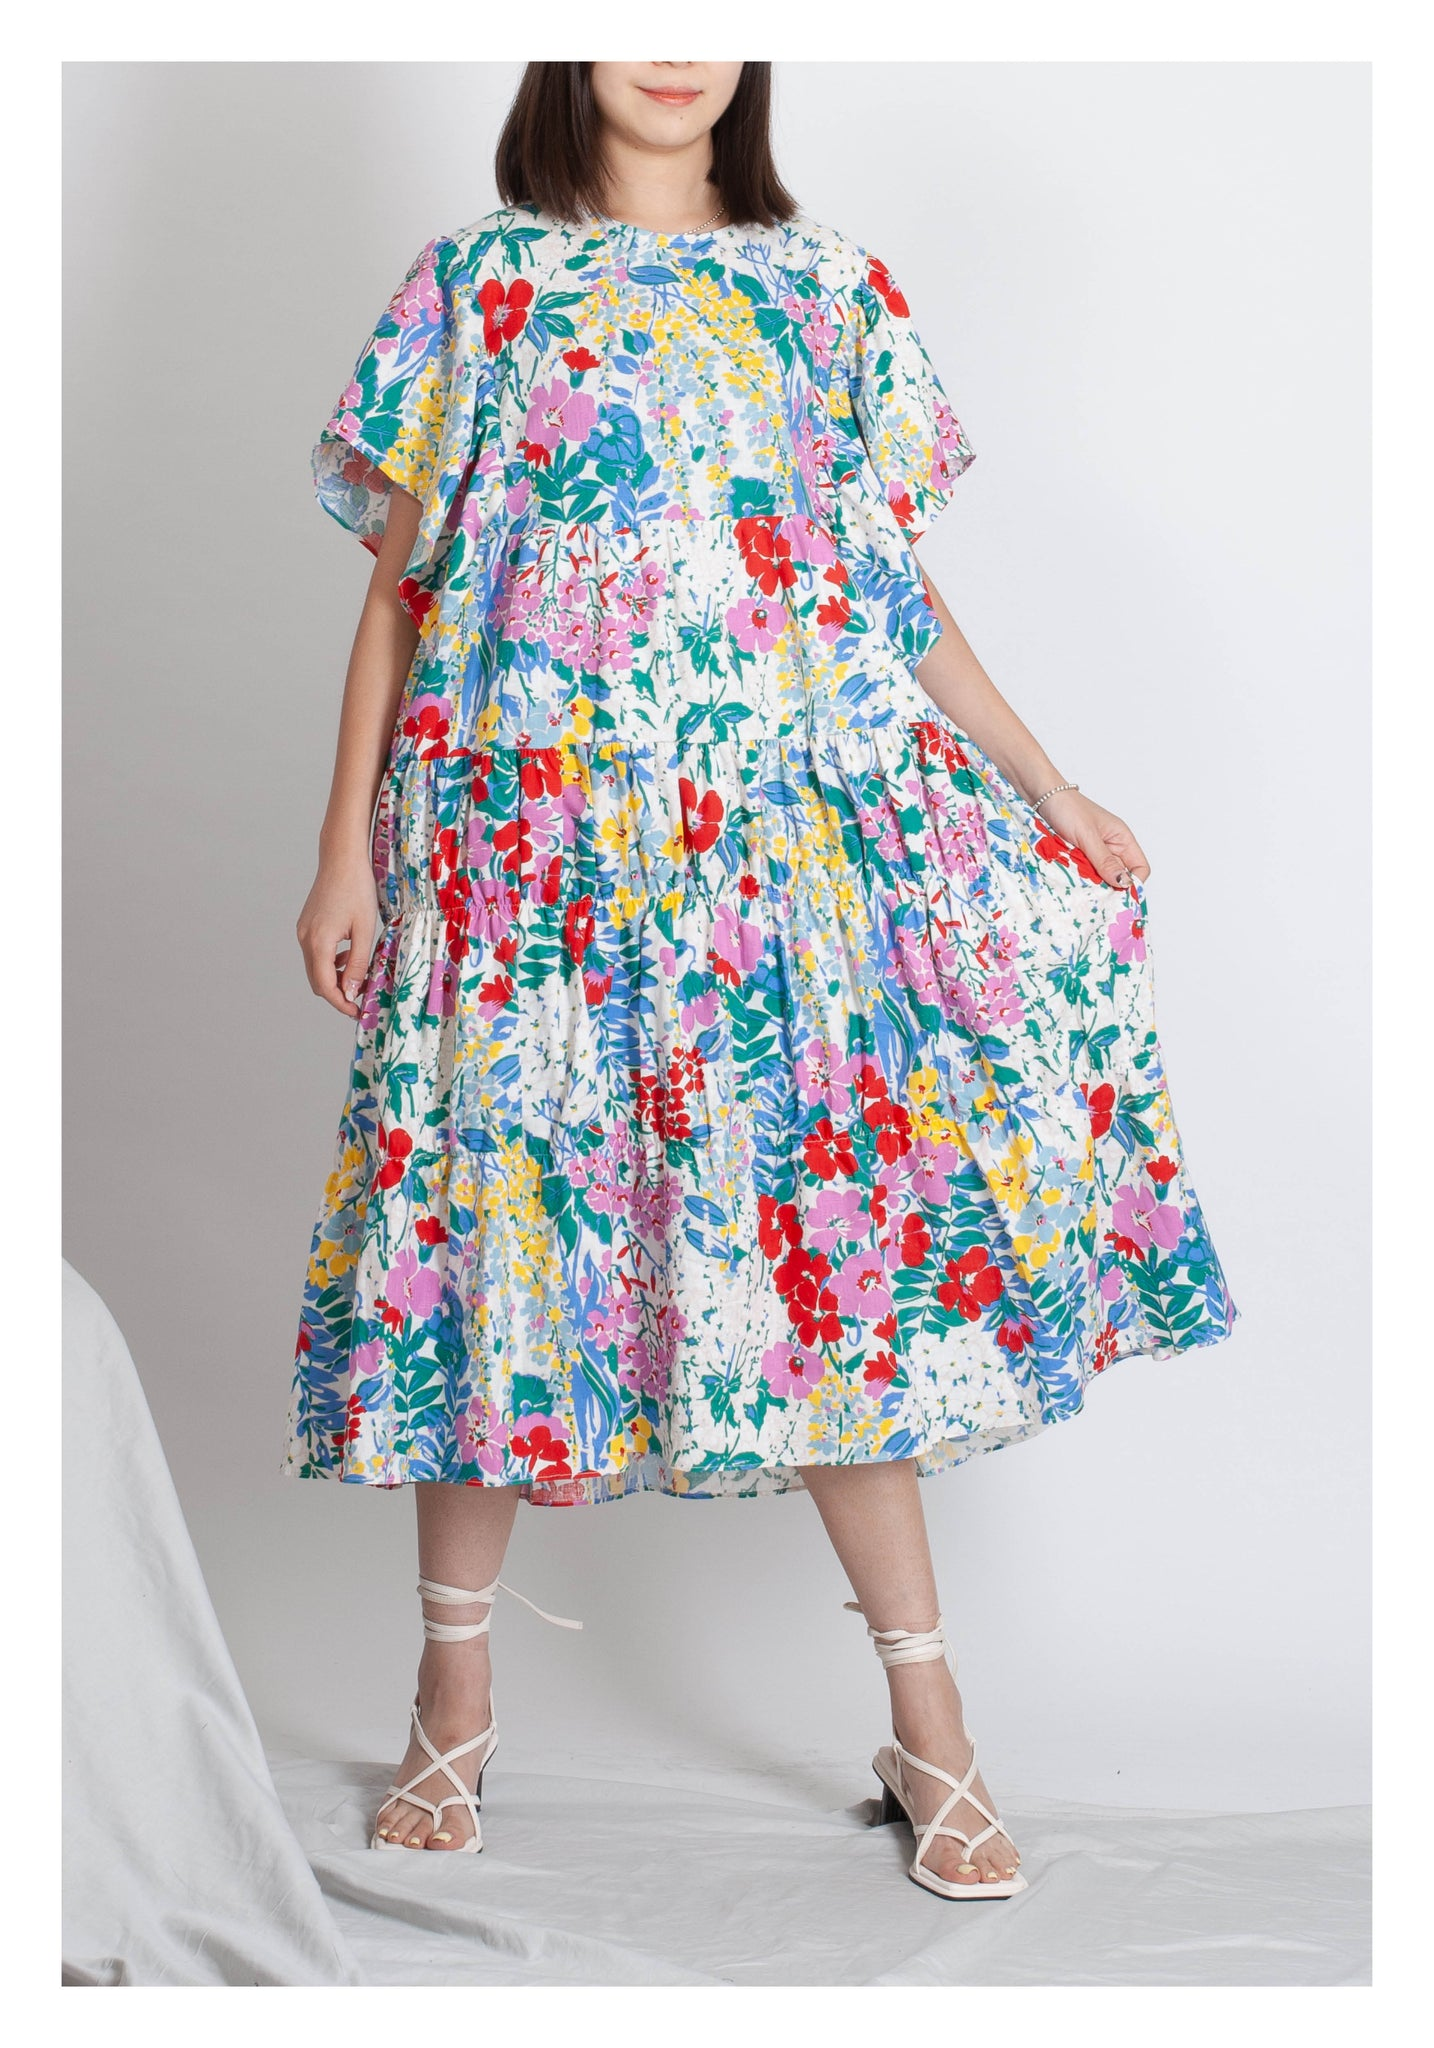 Summer Floral Flare Sleeve Dress - whoami